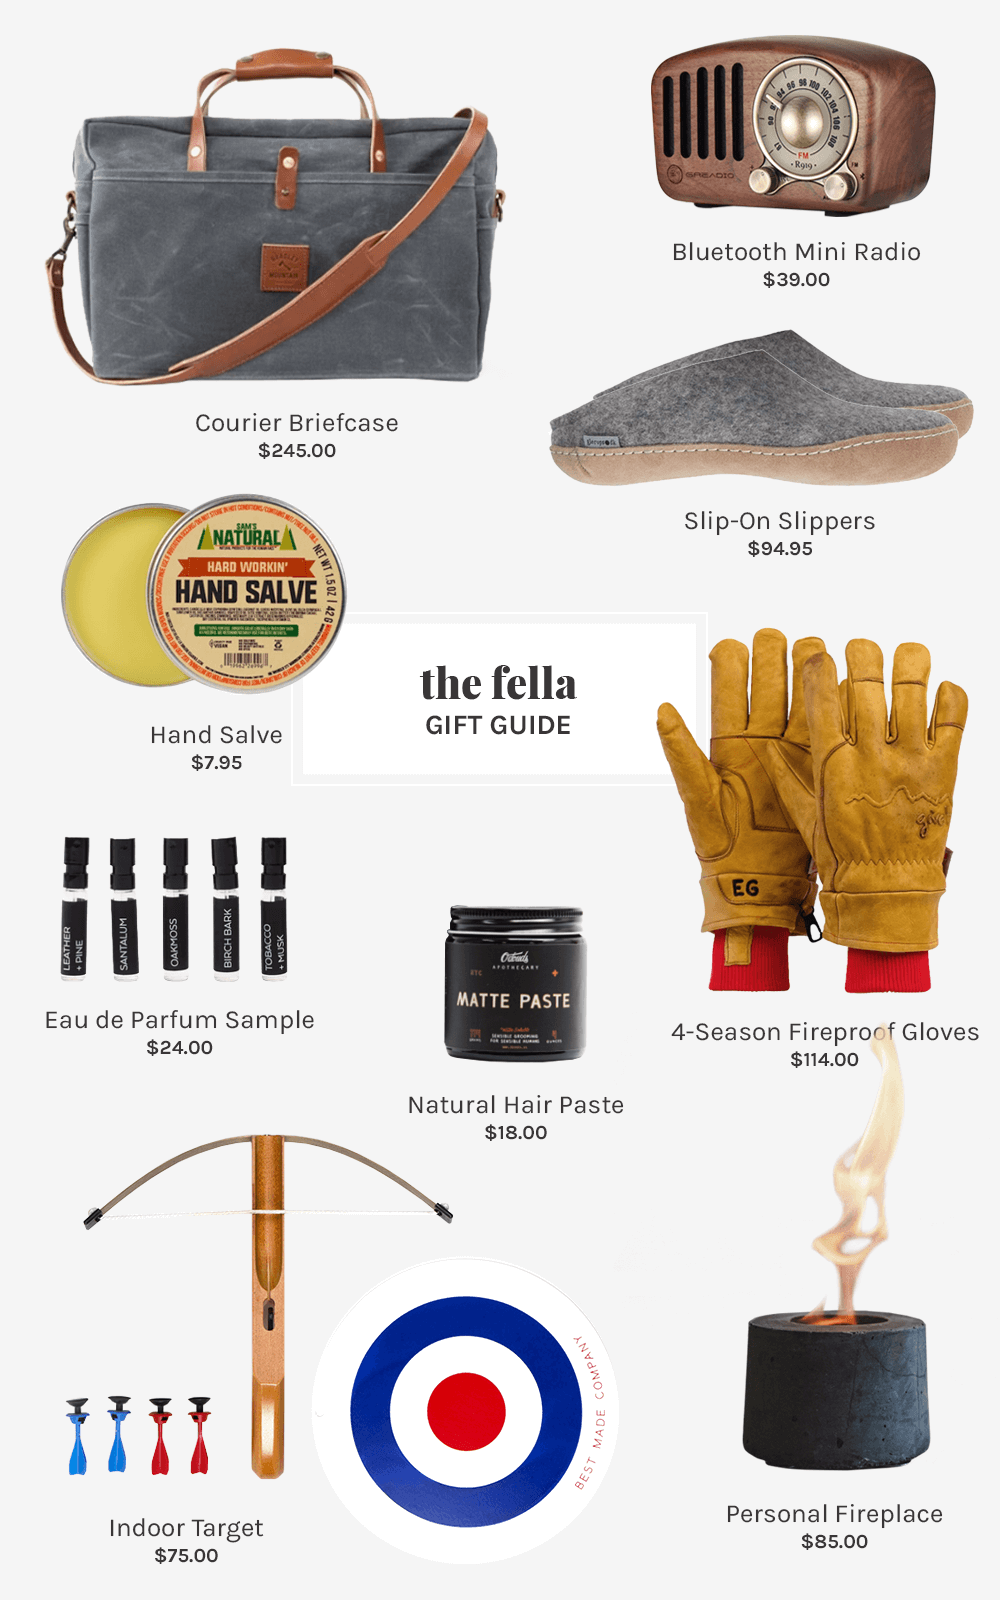 2019 Gift Guide for the Fella